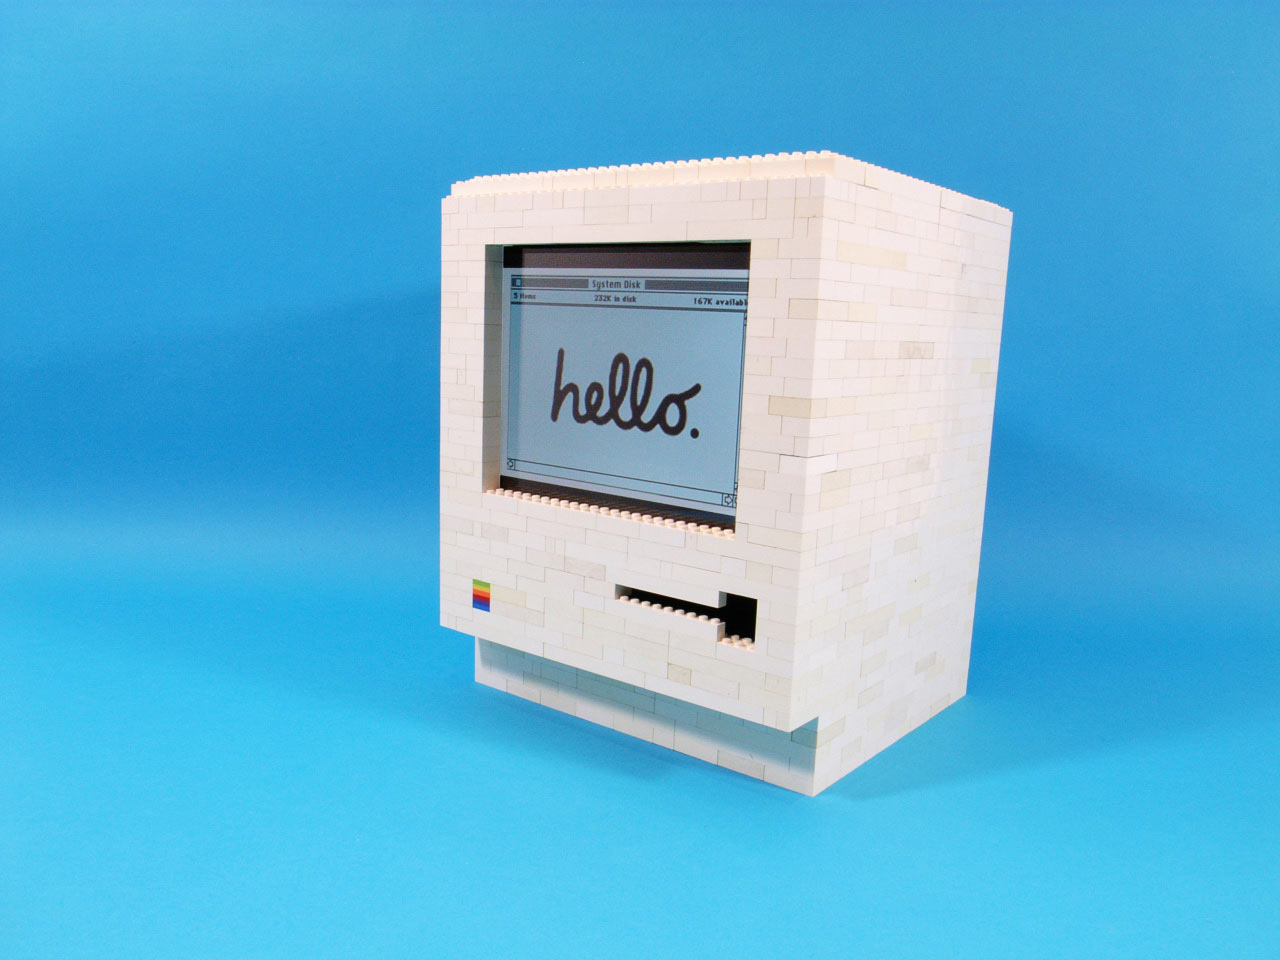 LEGO-Mac-Apple-Computer-iPad-1